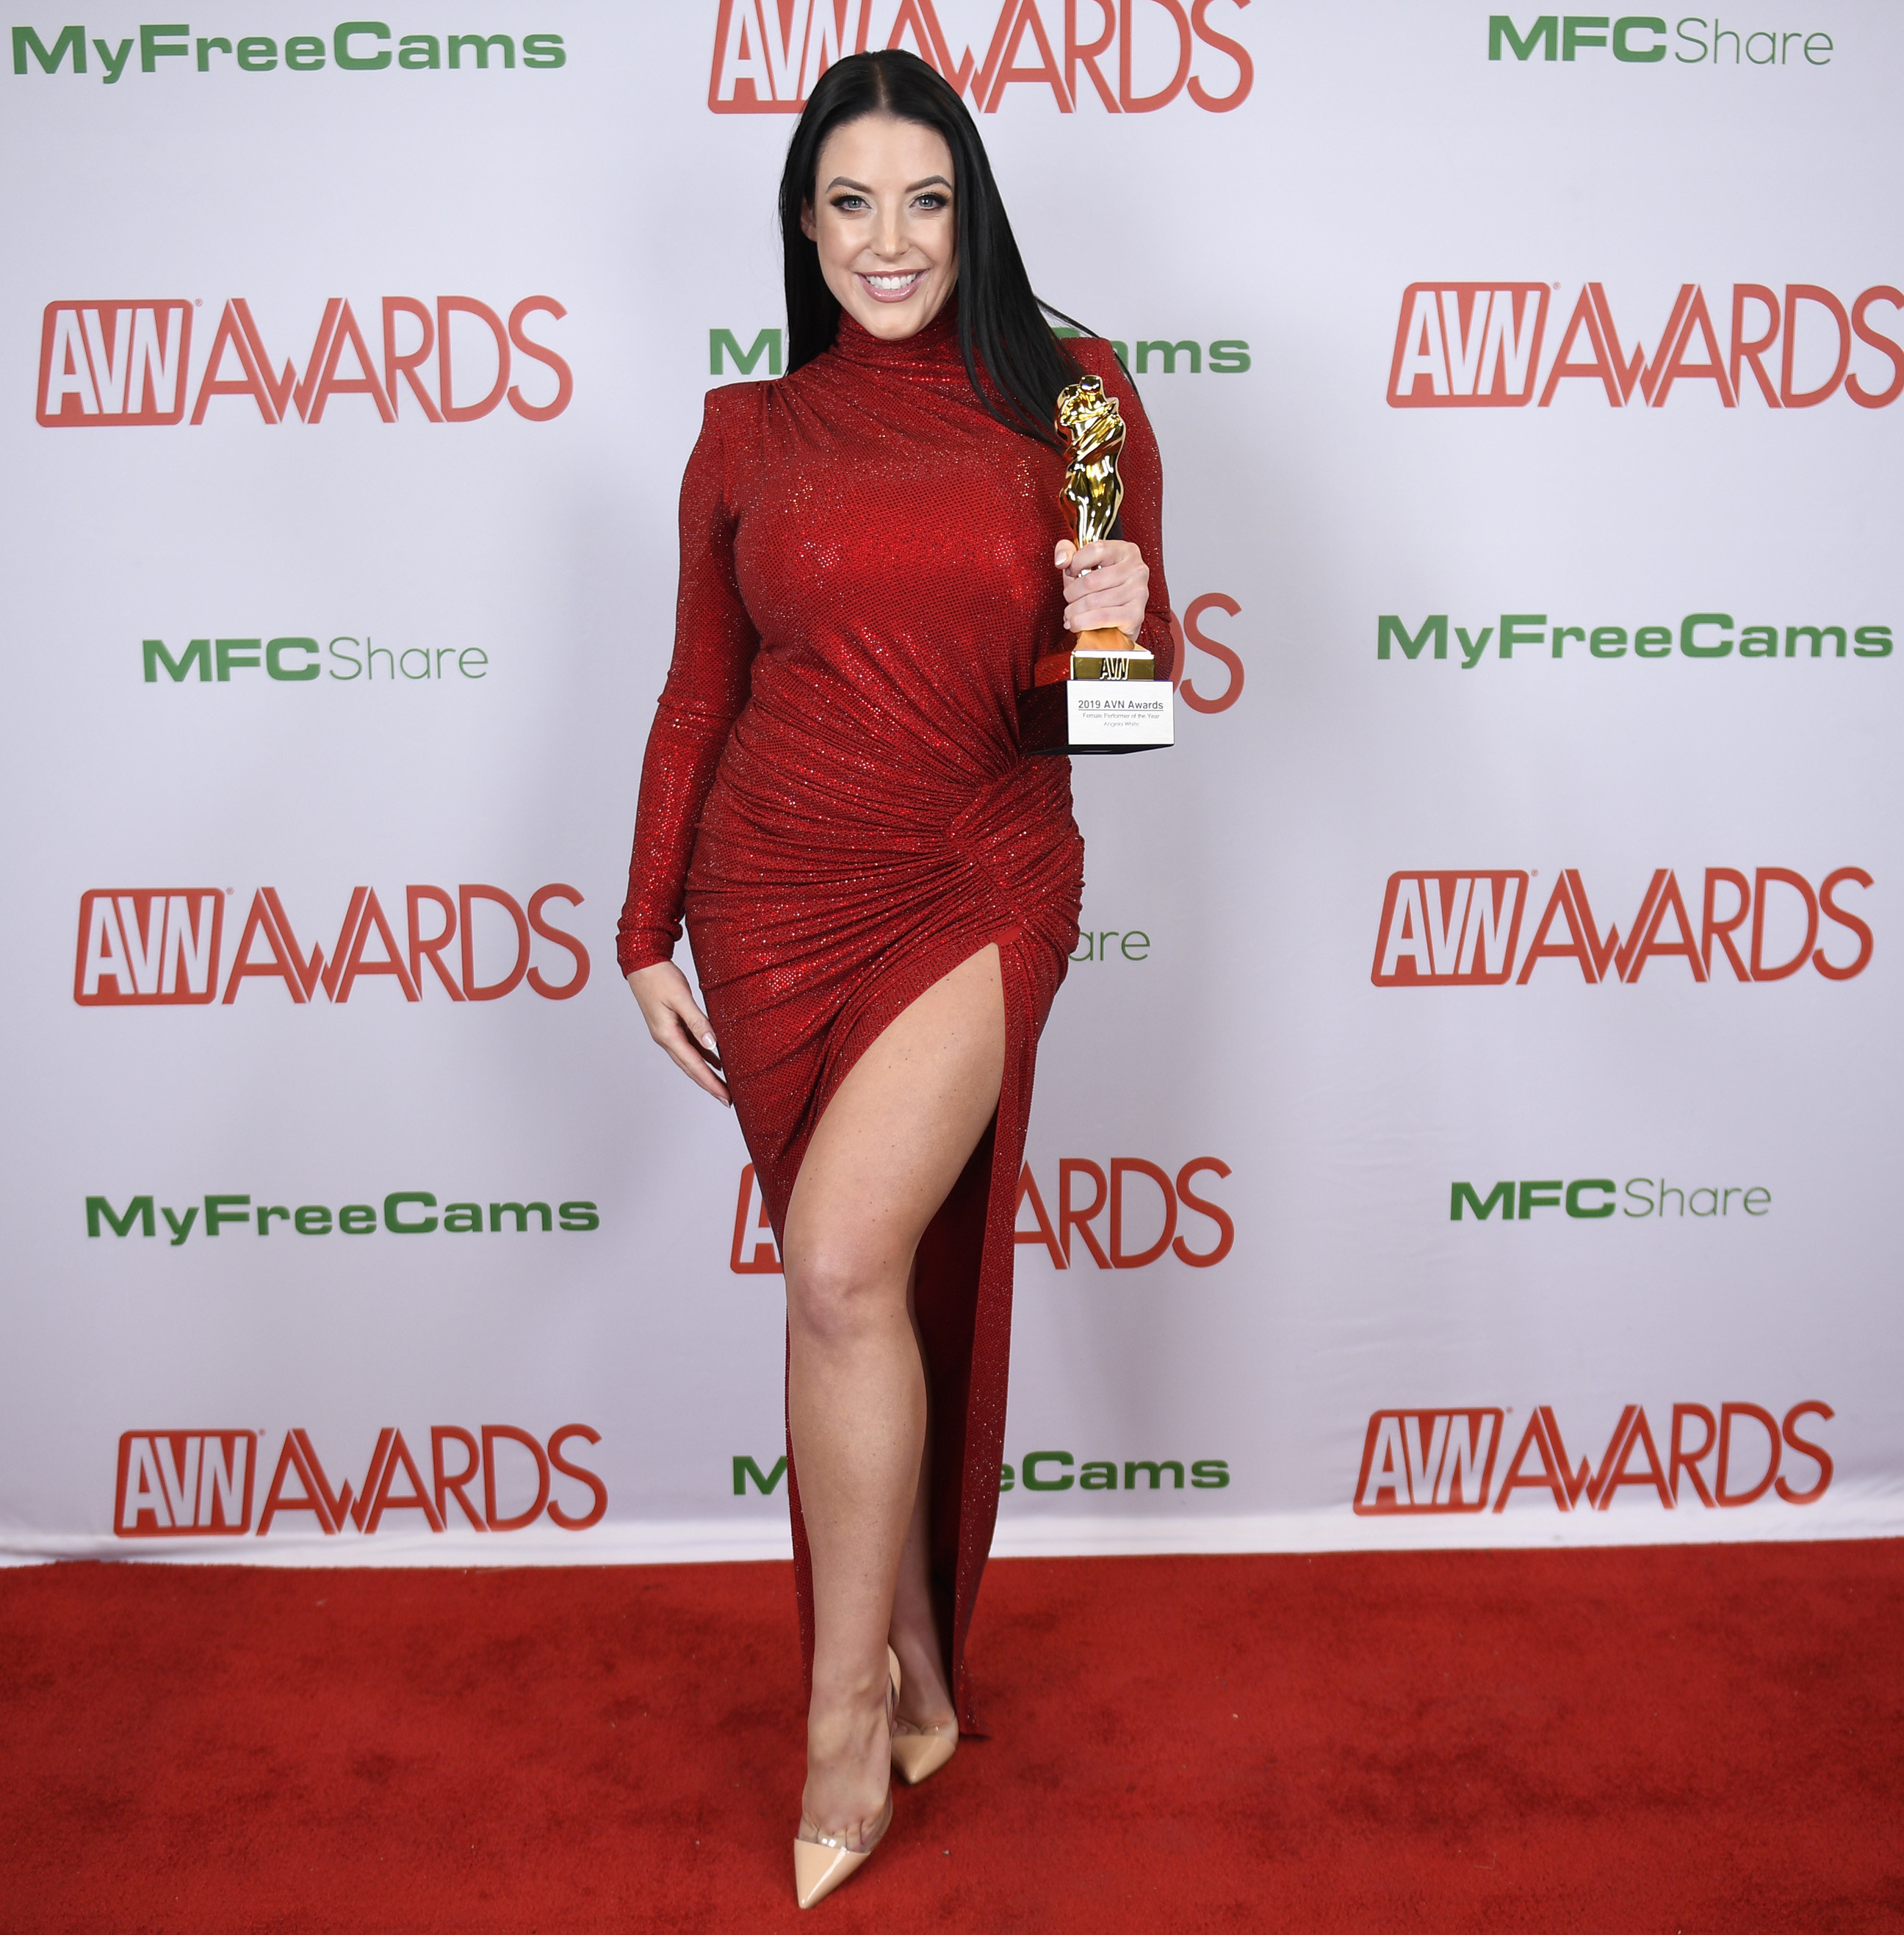 red carpet winner winners avn awards 2019